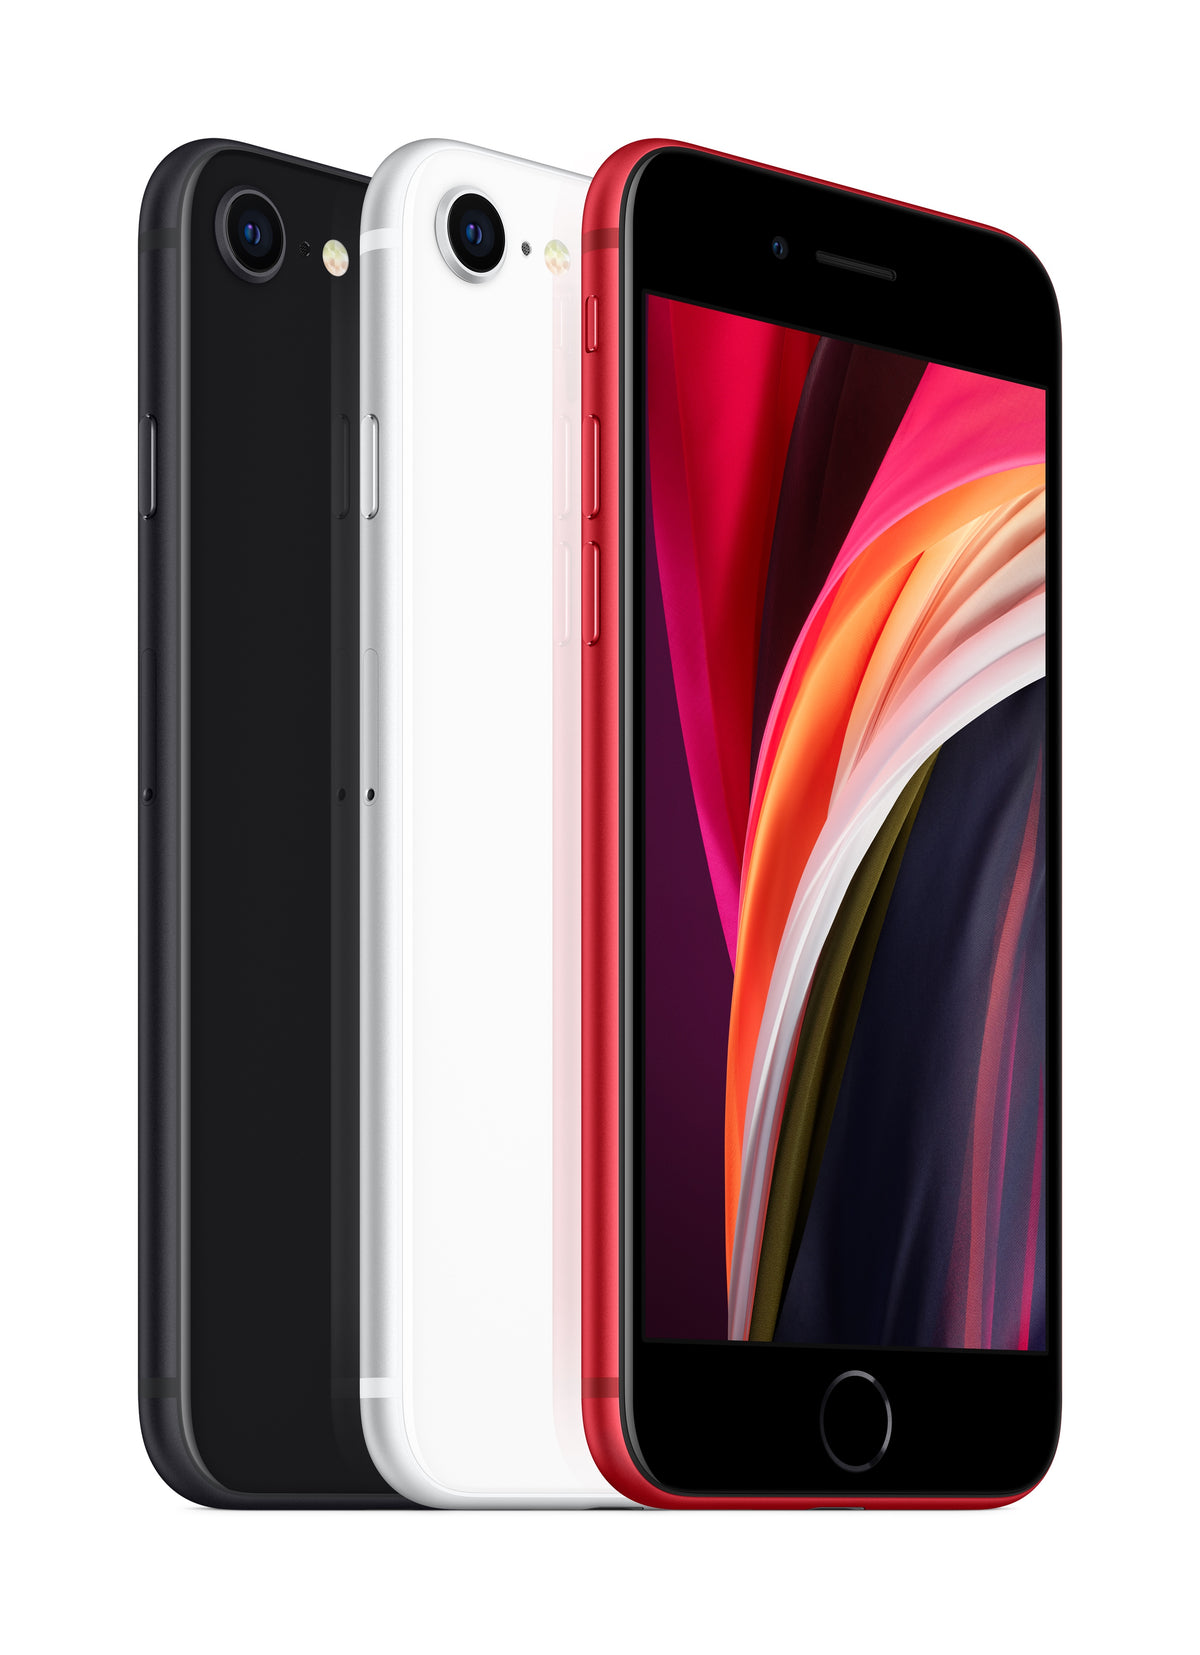 iPhone SE 256GB - Black